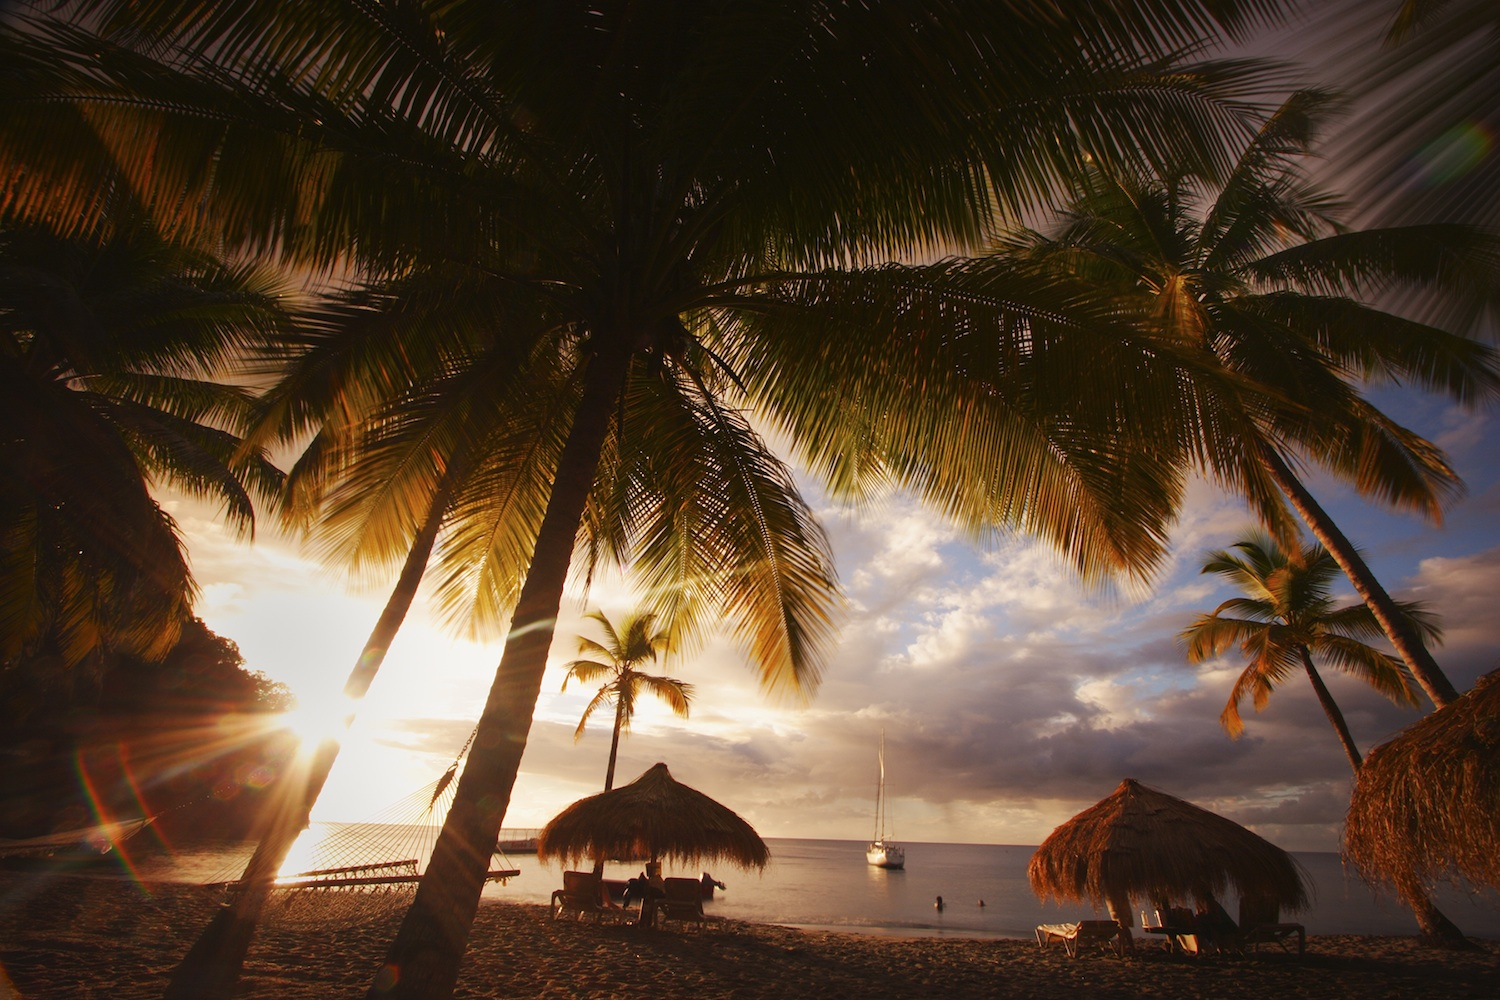 Rooms: St. Lucia Resorts Offer Great Last Minute Travel Deals